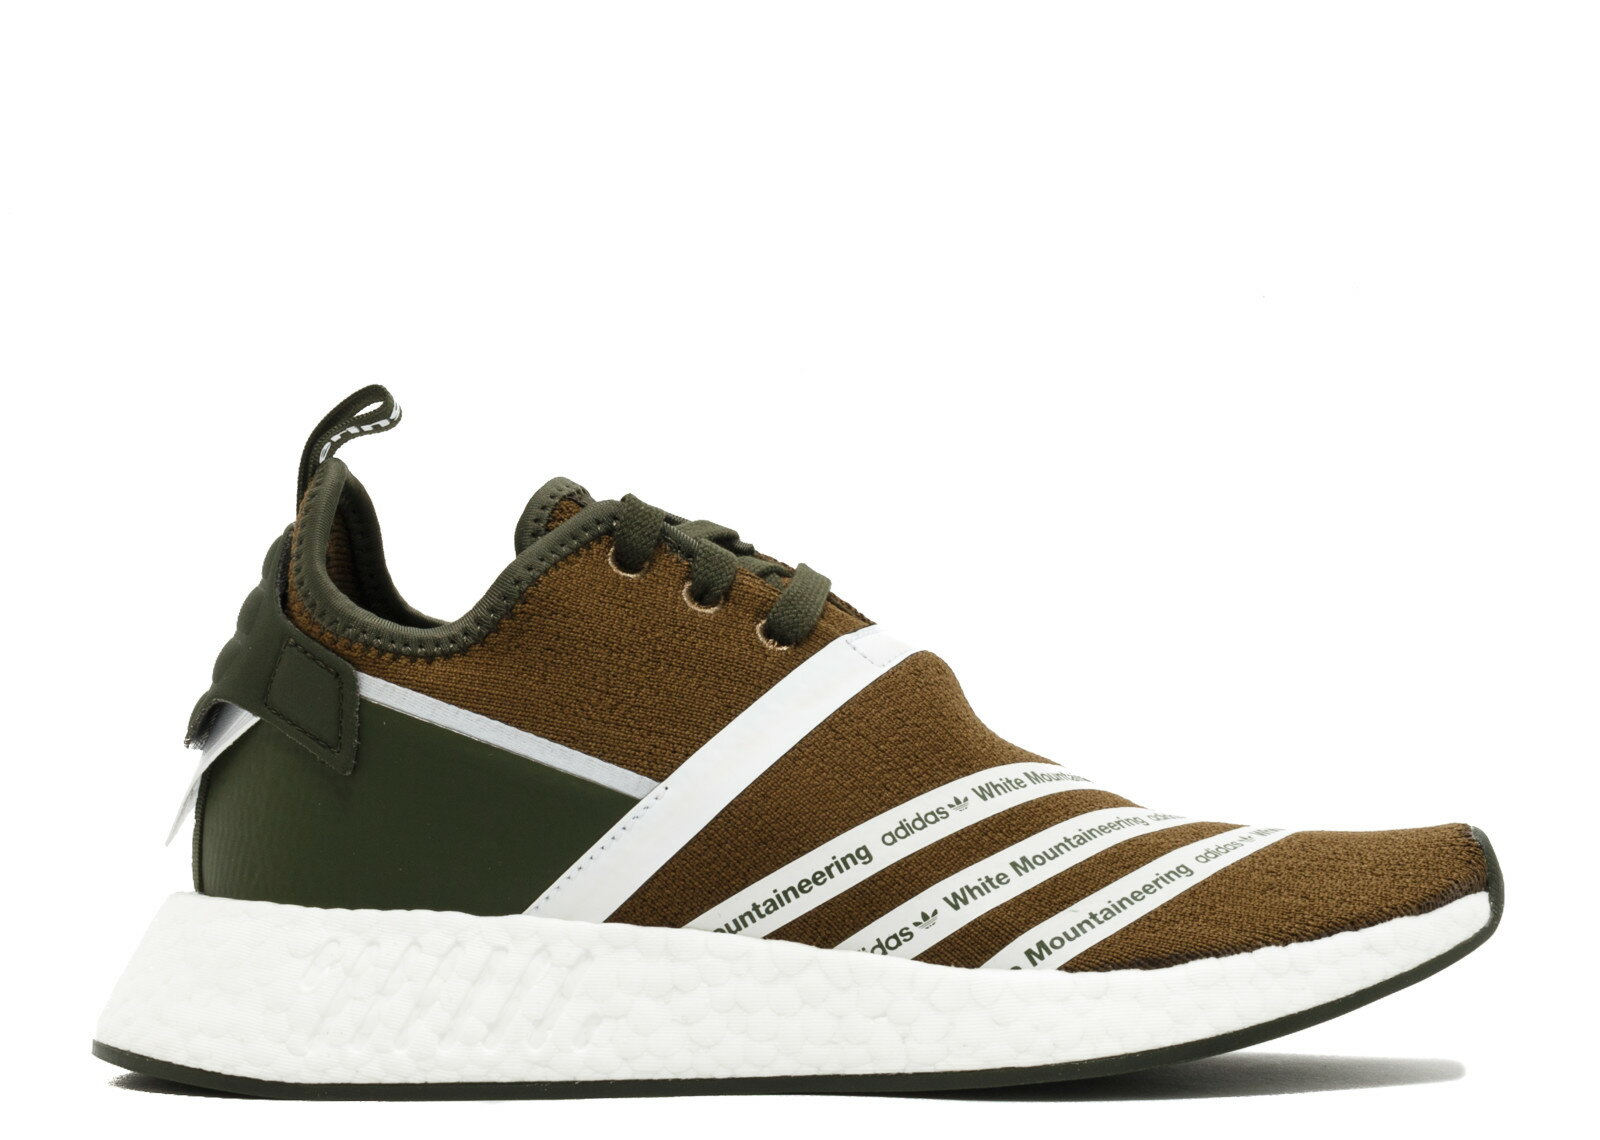 FOOTWEAR OTHER BRANDS WM NMD R2 PK WHITE 白 ホワイト MOUNTAINEERING